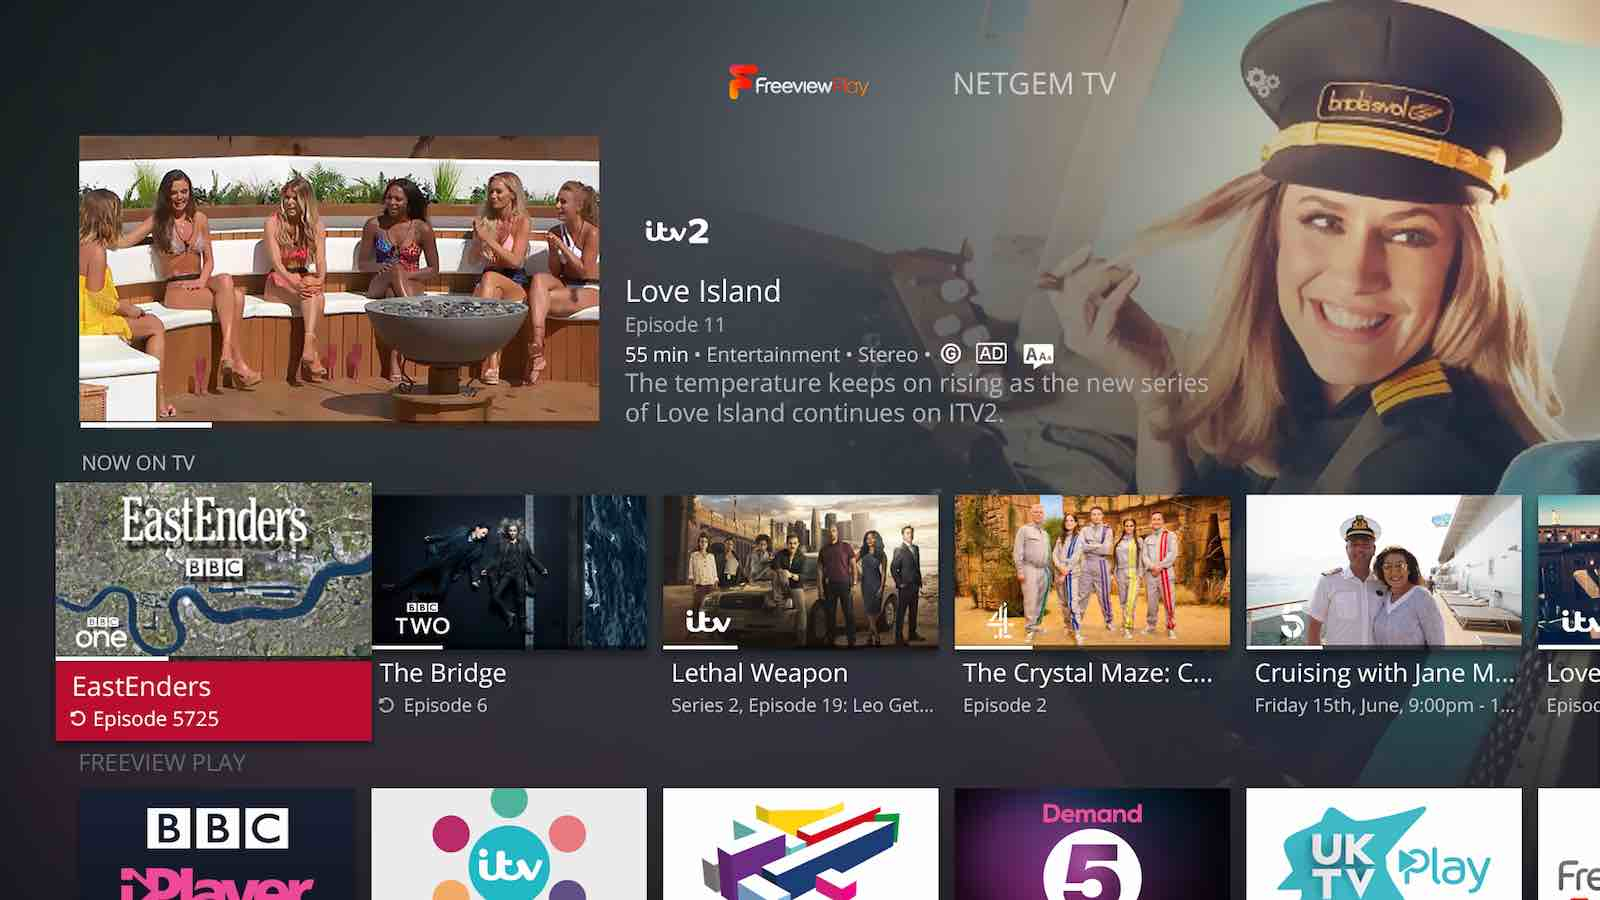 Review: Netgem's NetBox HD and SoundBox HD Freeview Play set top